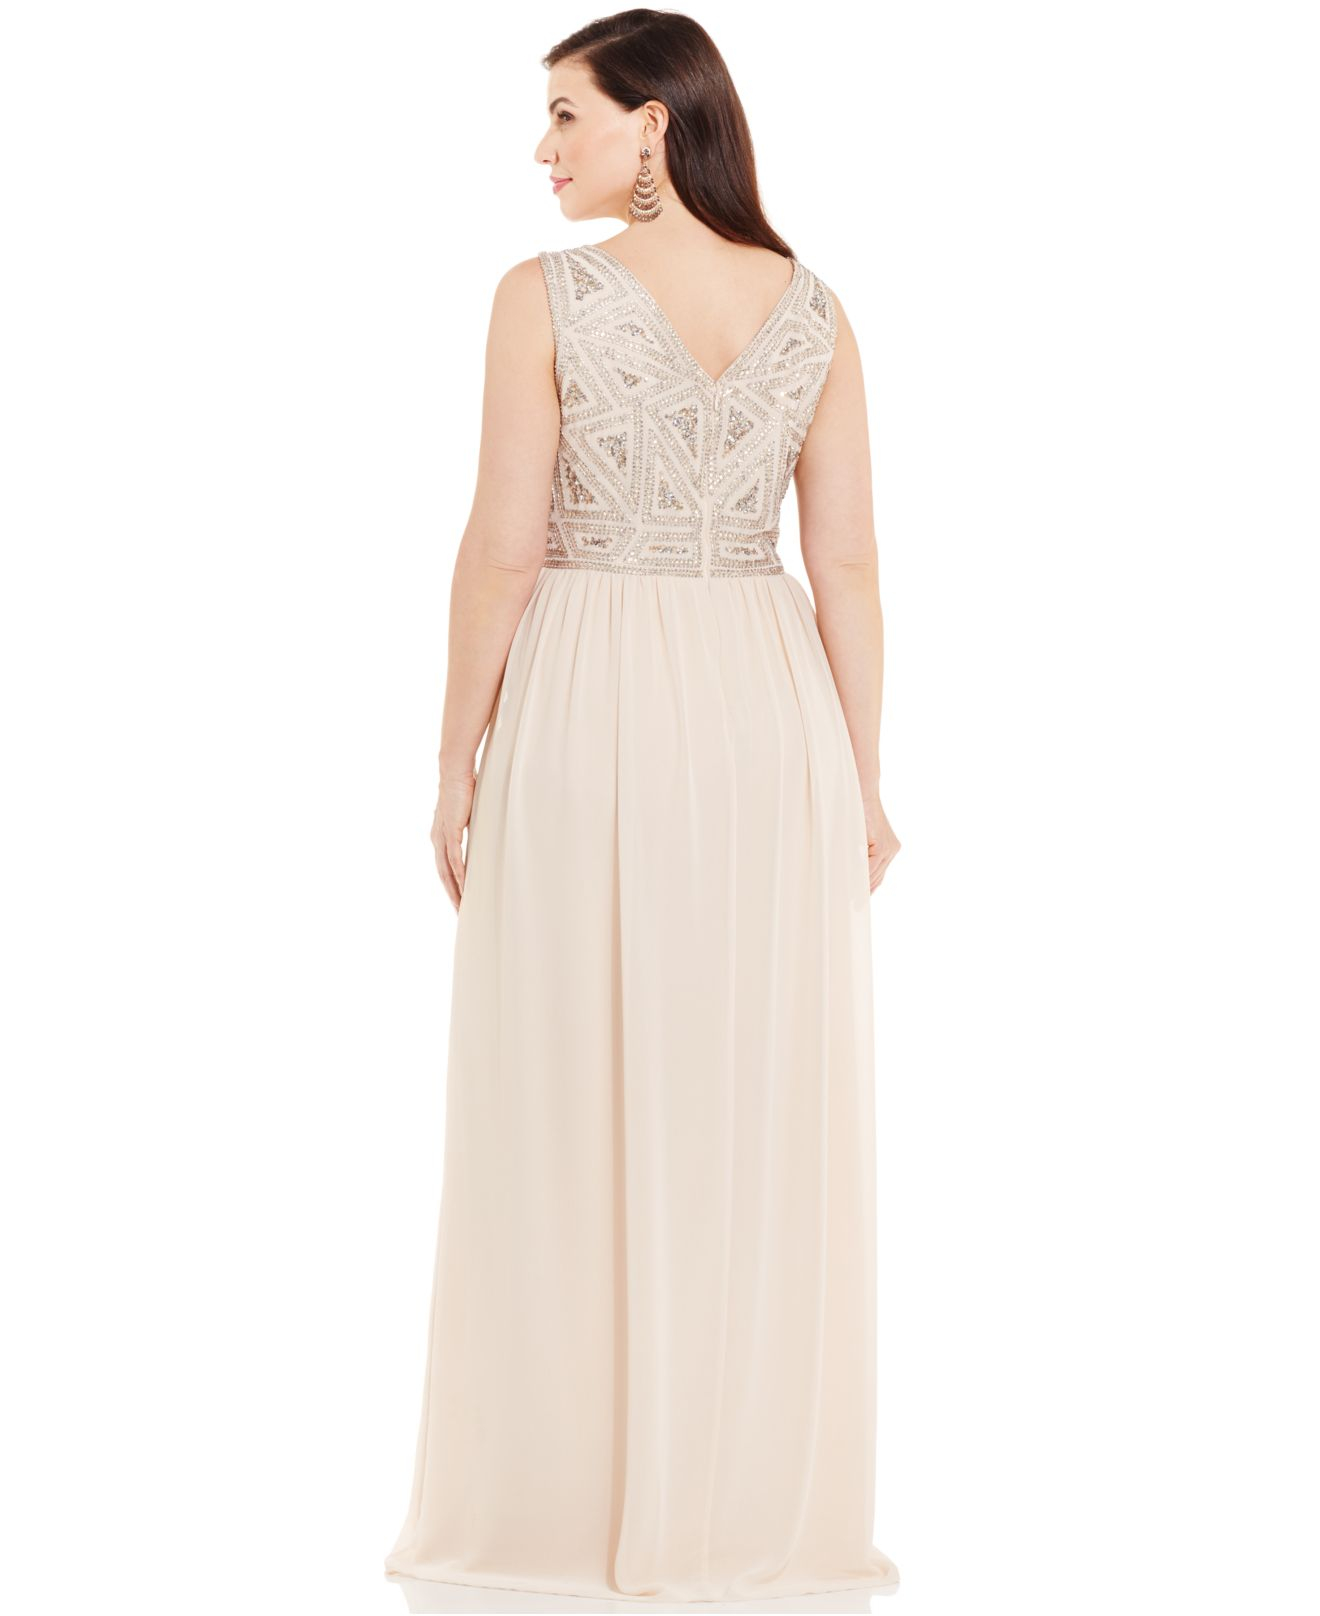 0c20e384d49 Adrianna Papell Plus Size Embellished Gown in Pink - Lyst